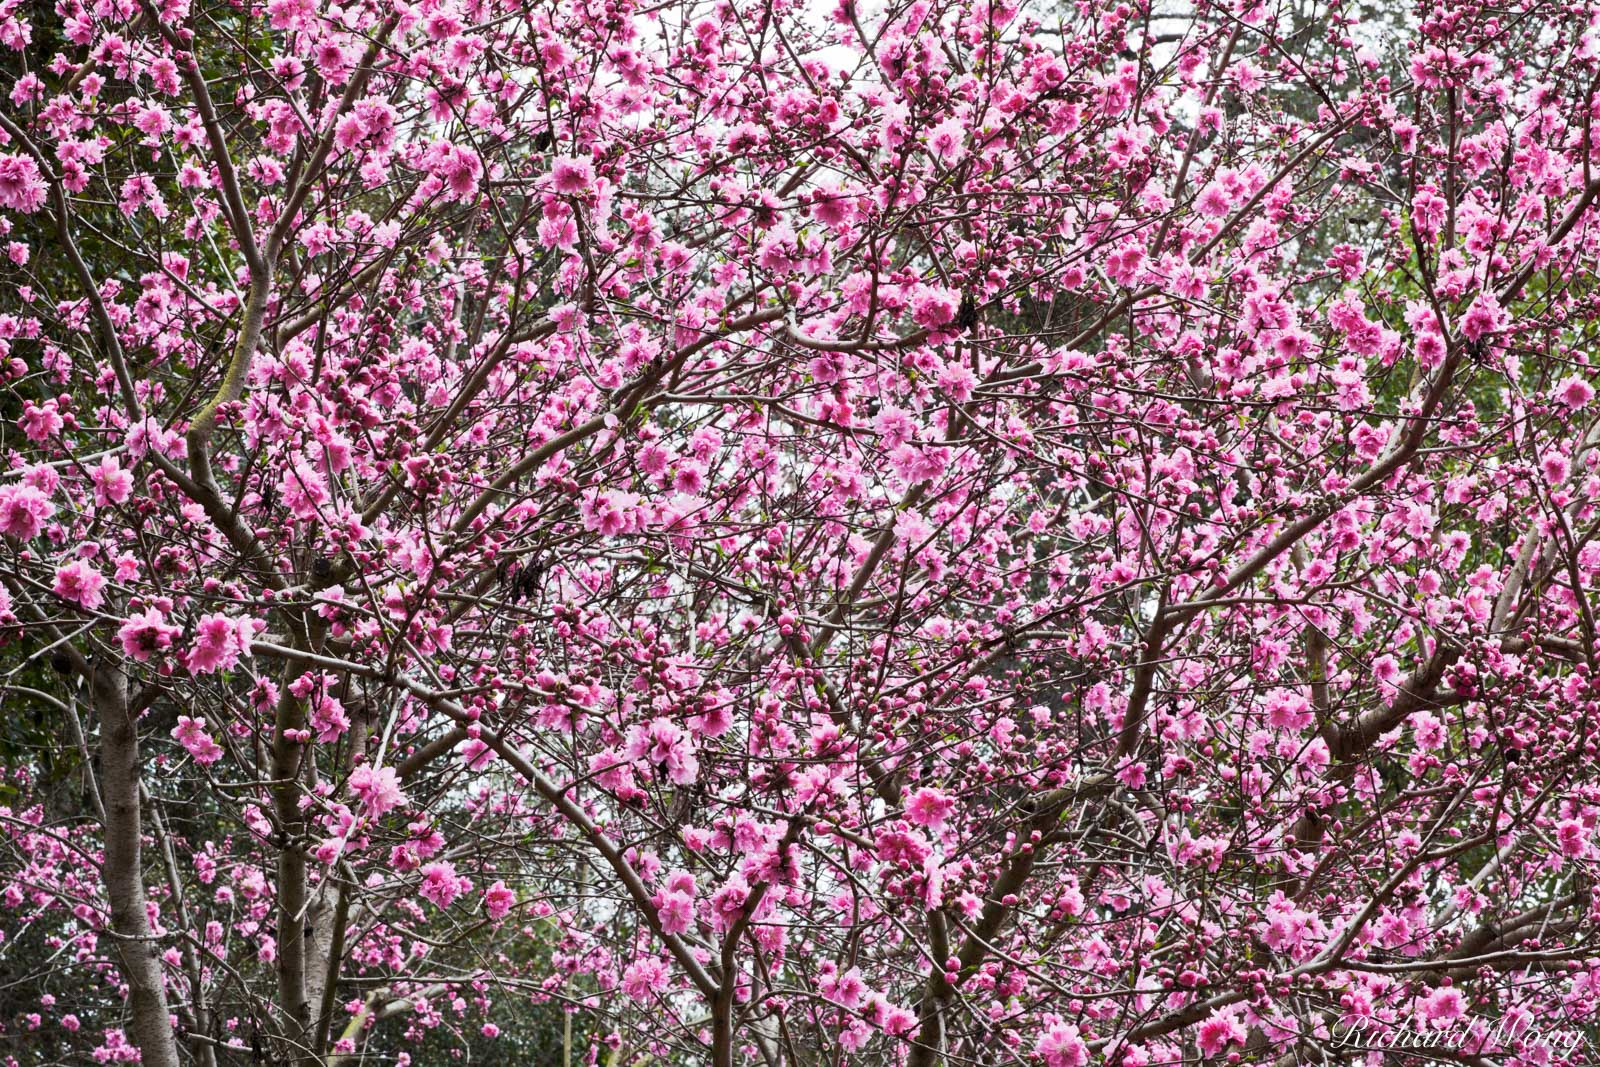 Los Angeles County, San Gabriel Valley, bloom, blossoms, cherry tree blossom, flowering, huntington botanical gardens, japanese garden, nature, outdoor, outside, pink flowers, season, seasonal, southe, photo